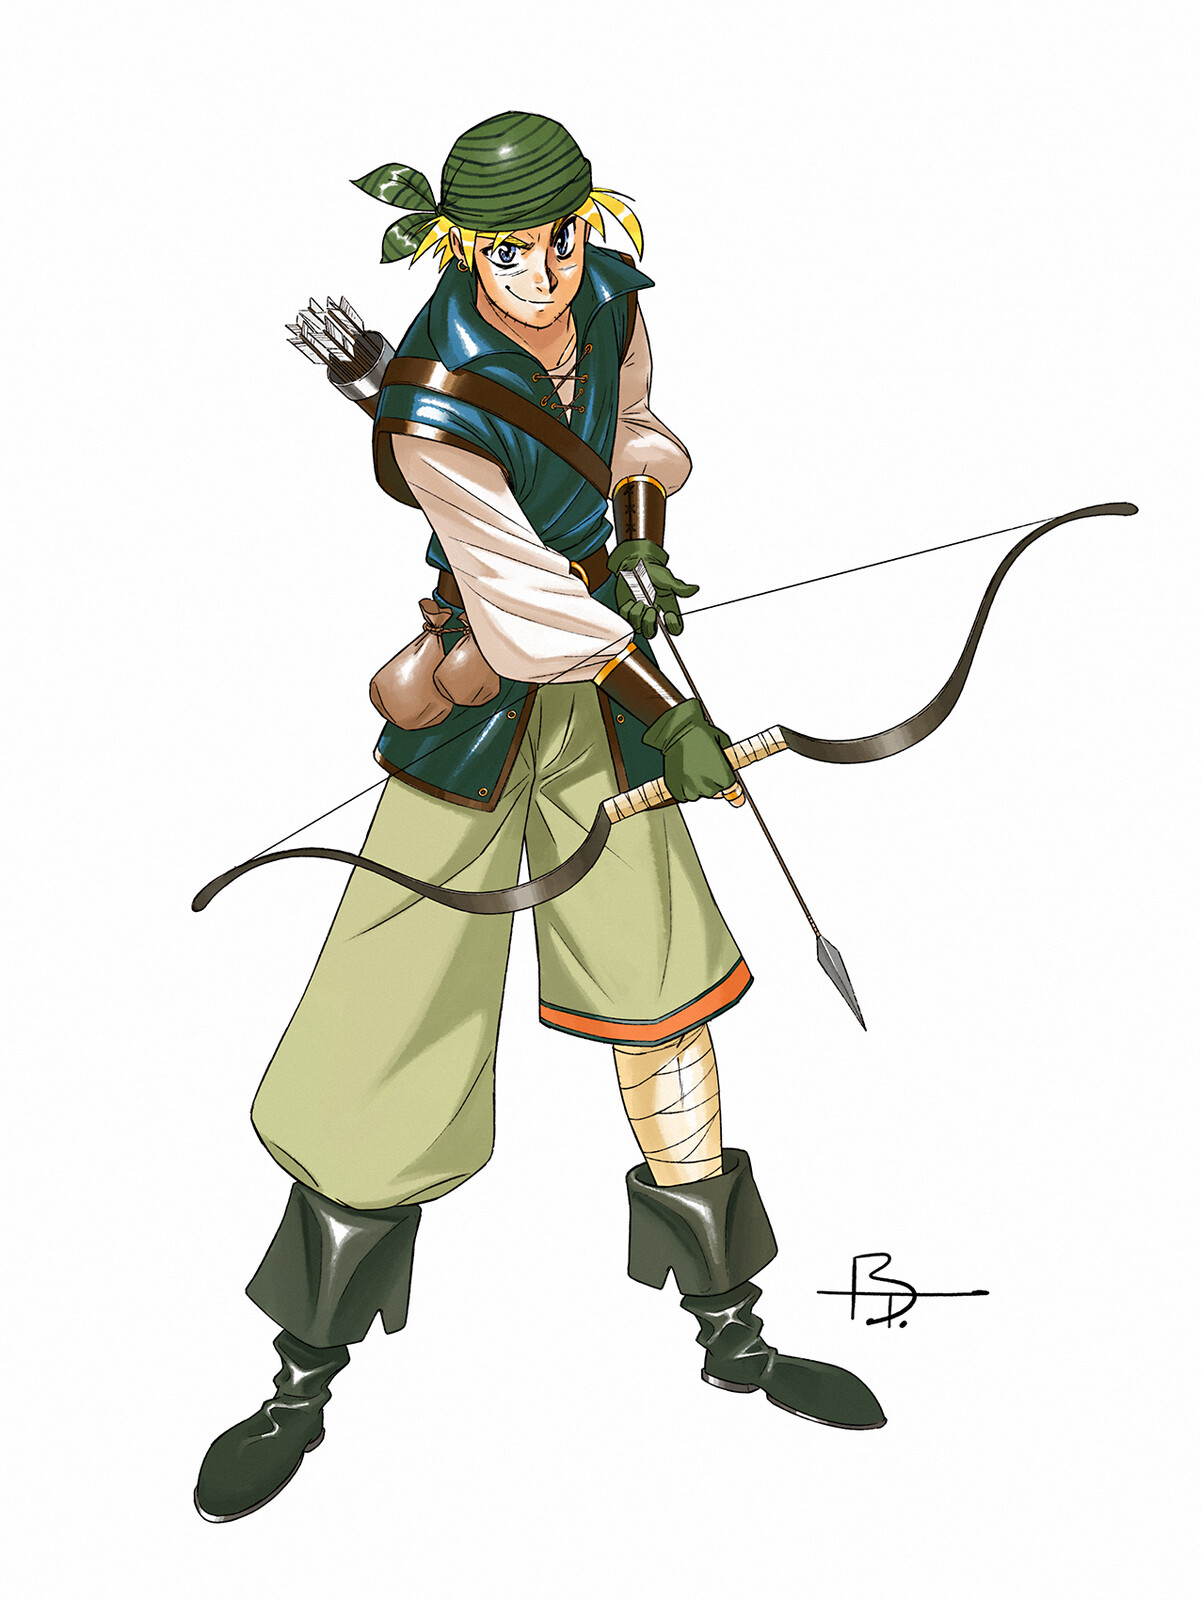 Ryan is a mercenary for hire, who seems only to care for money. His dismissive attitude toward the concerns of others and his biting sarcasm make him a difficult ally at times. However, his skill with a bow and his speed in battle are unmatched.